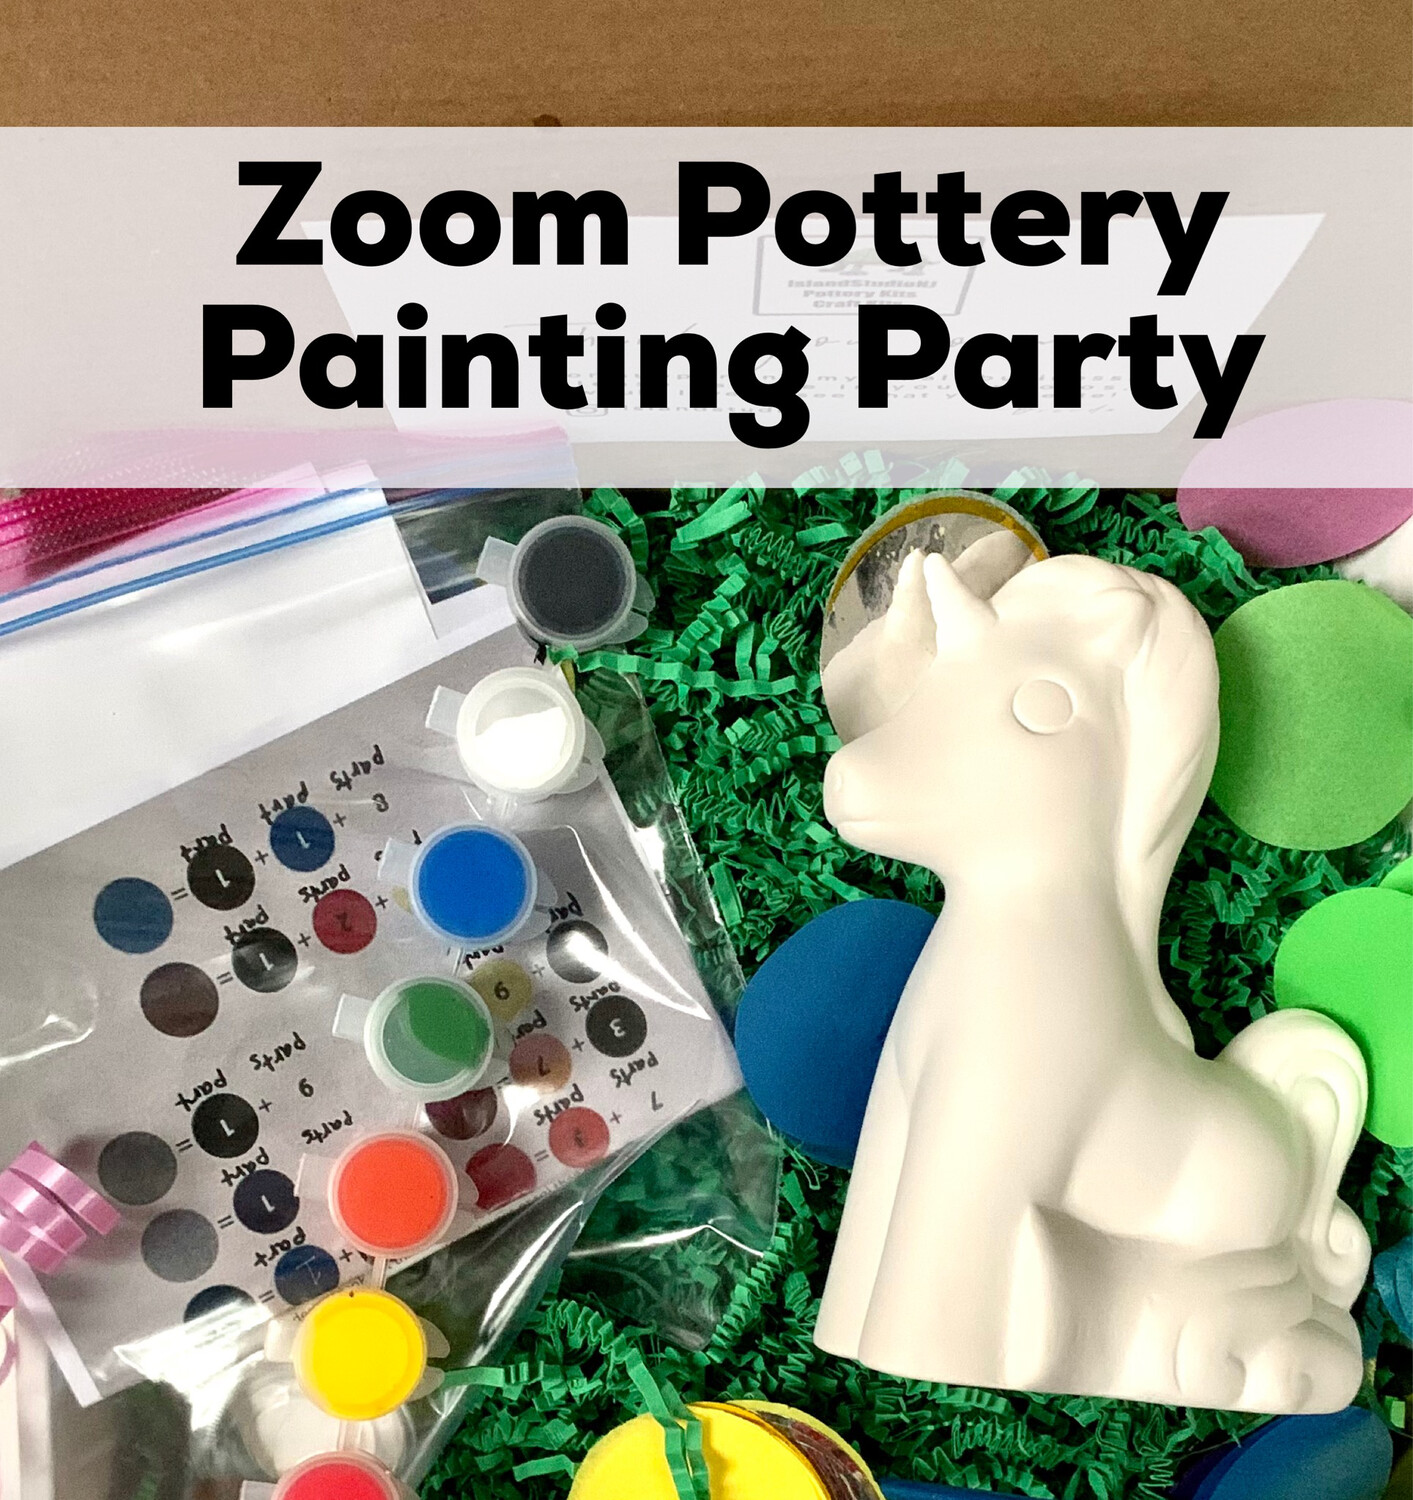 Zoom Pottery Painting Party August 31, 2021 from 3-4:30pm - Free With Pottery Purchase